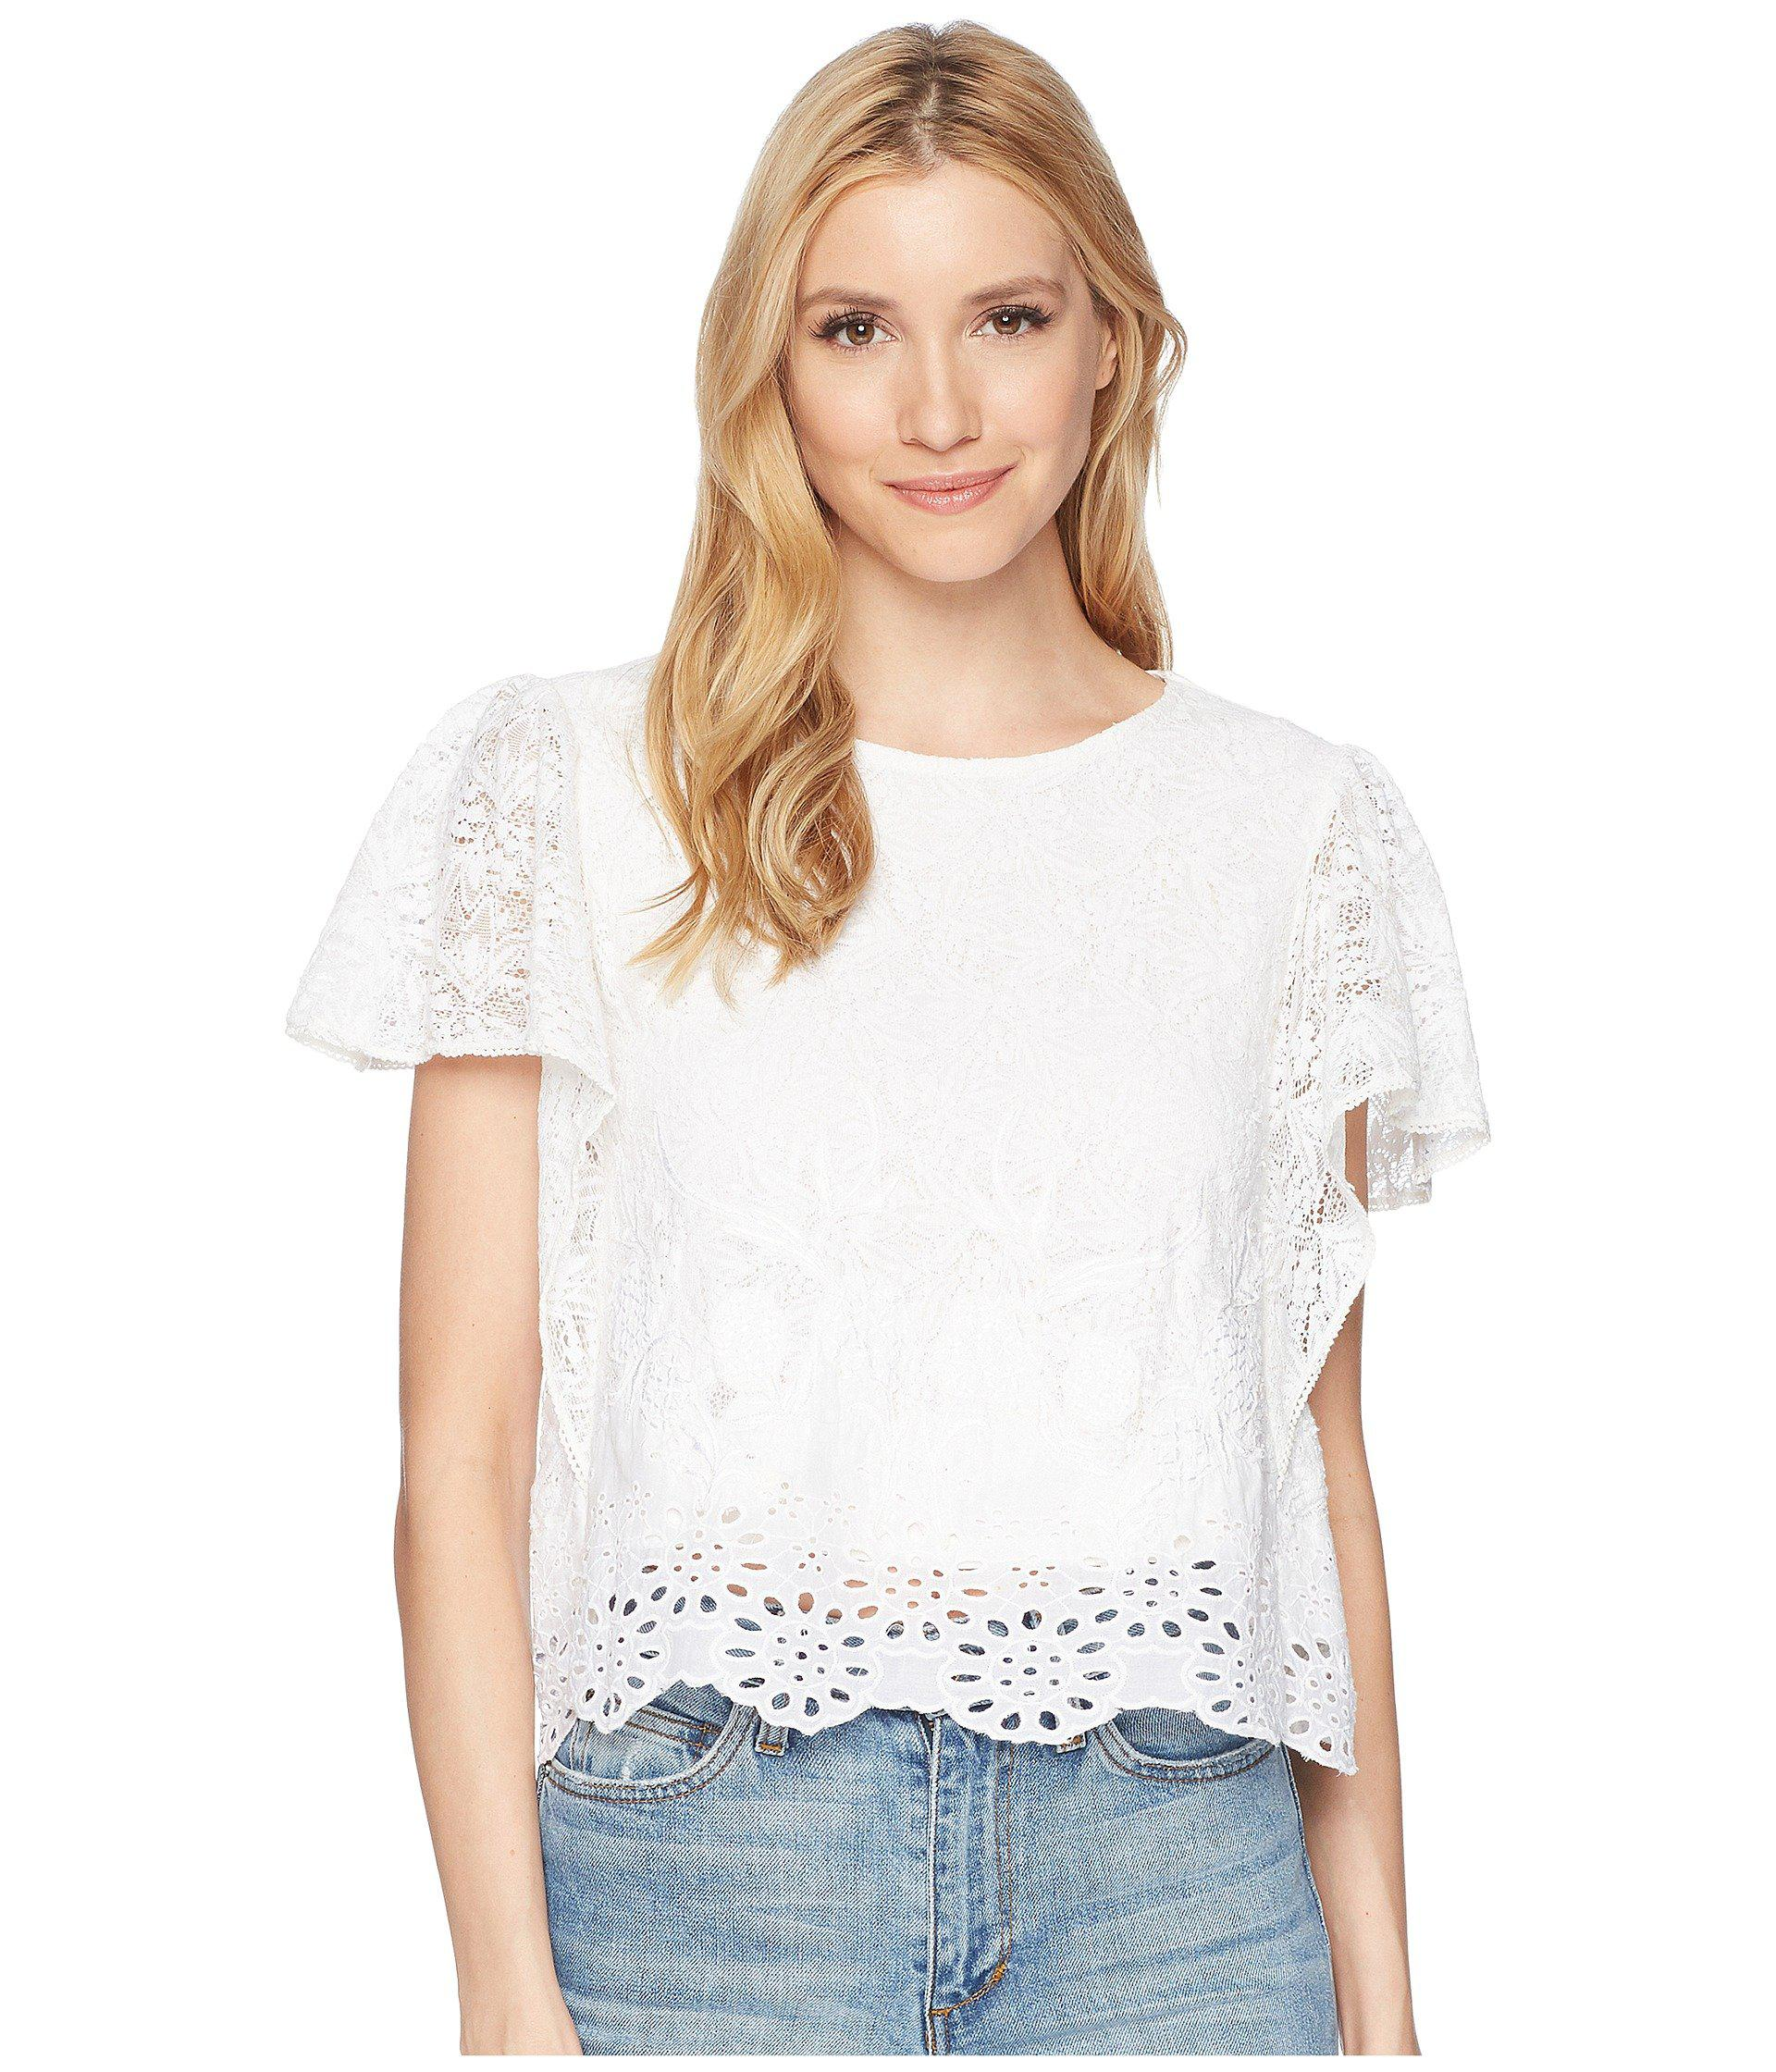 25c36d6075204 Lyst - Lucky Brand Eyelet Top in White - Save 17%